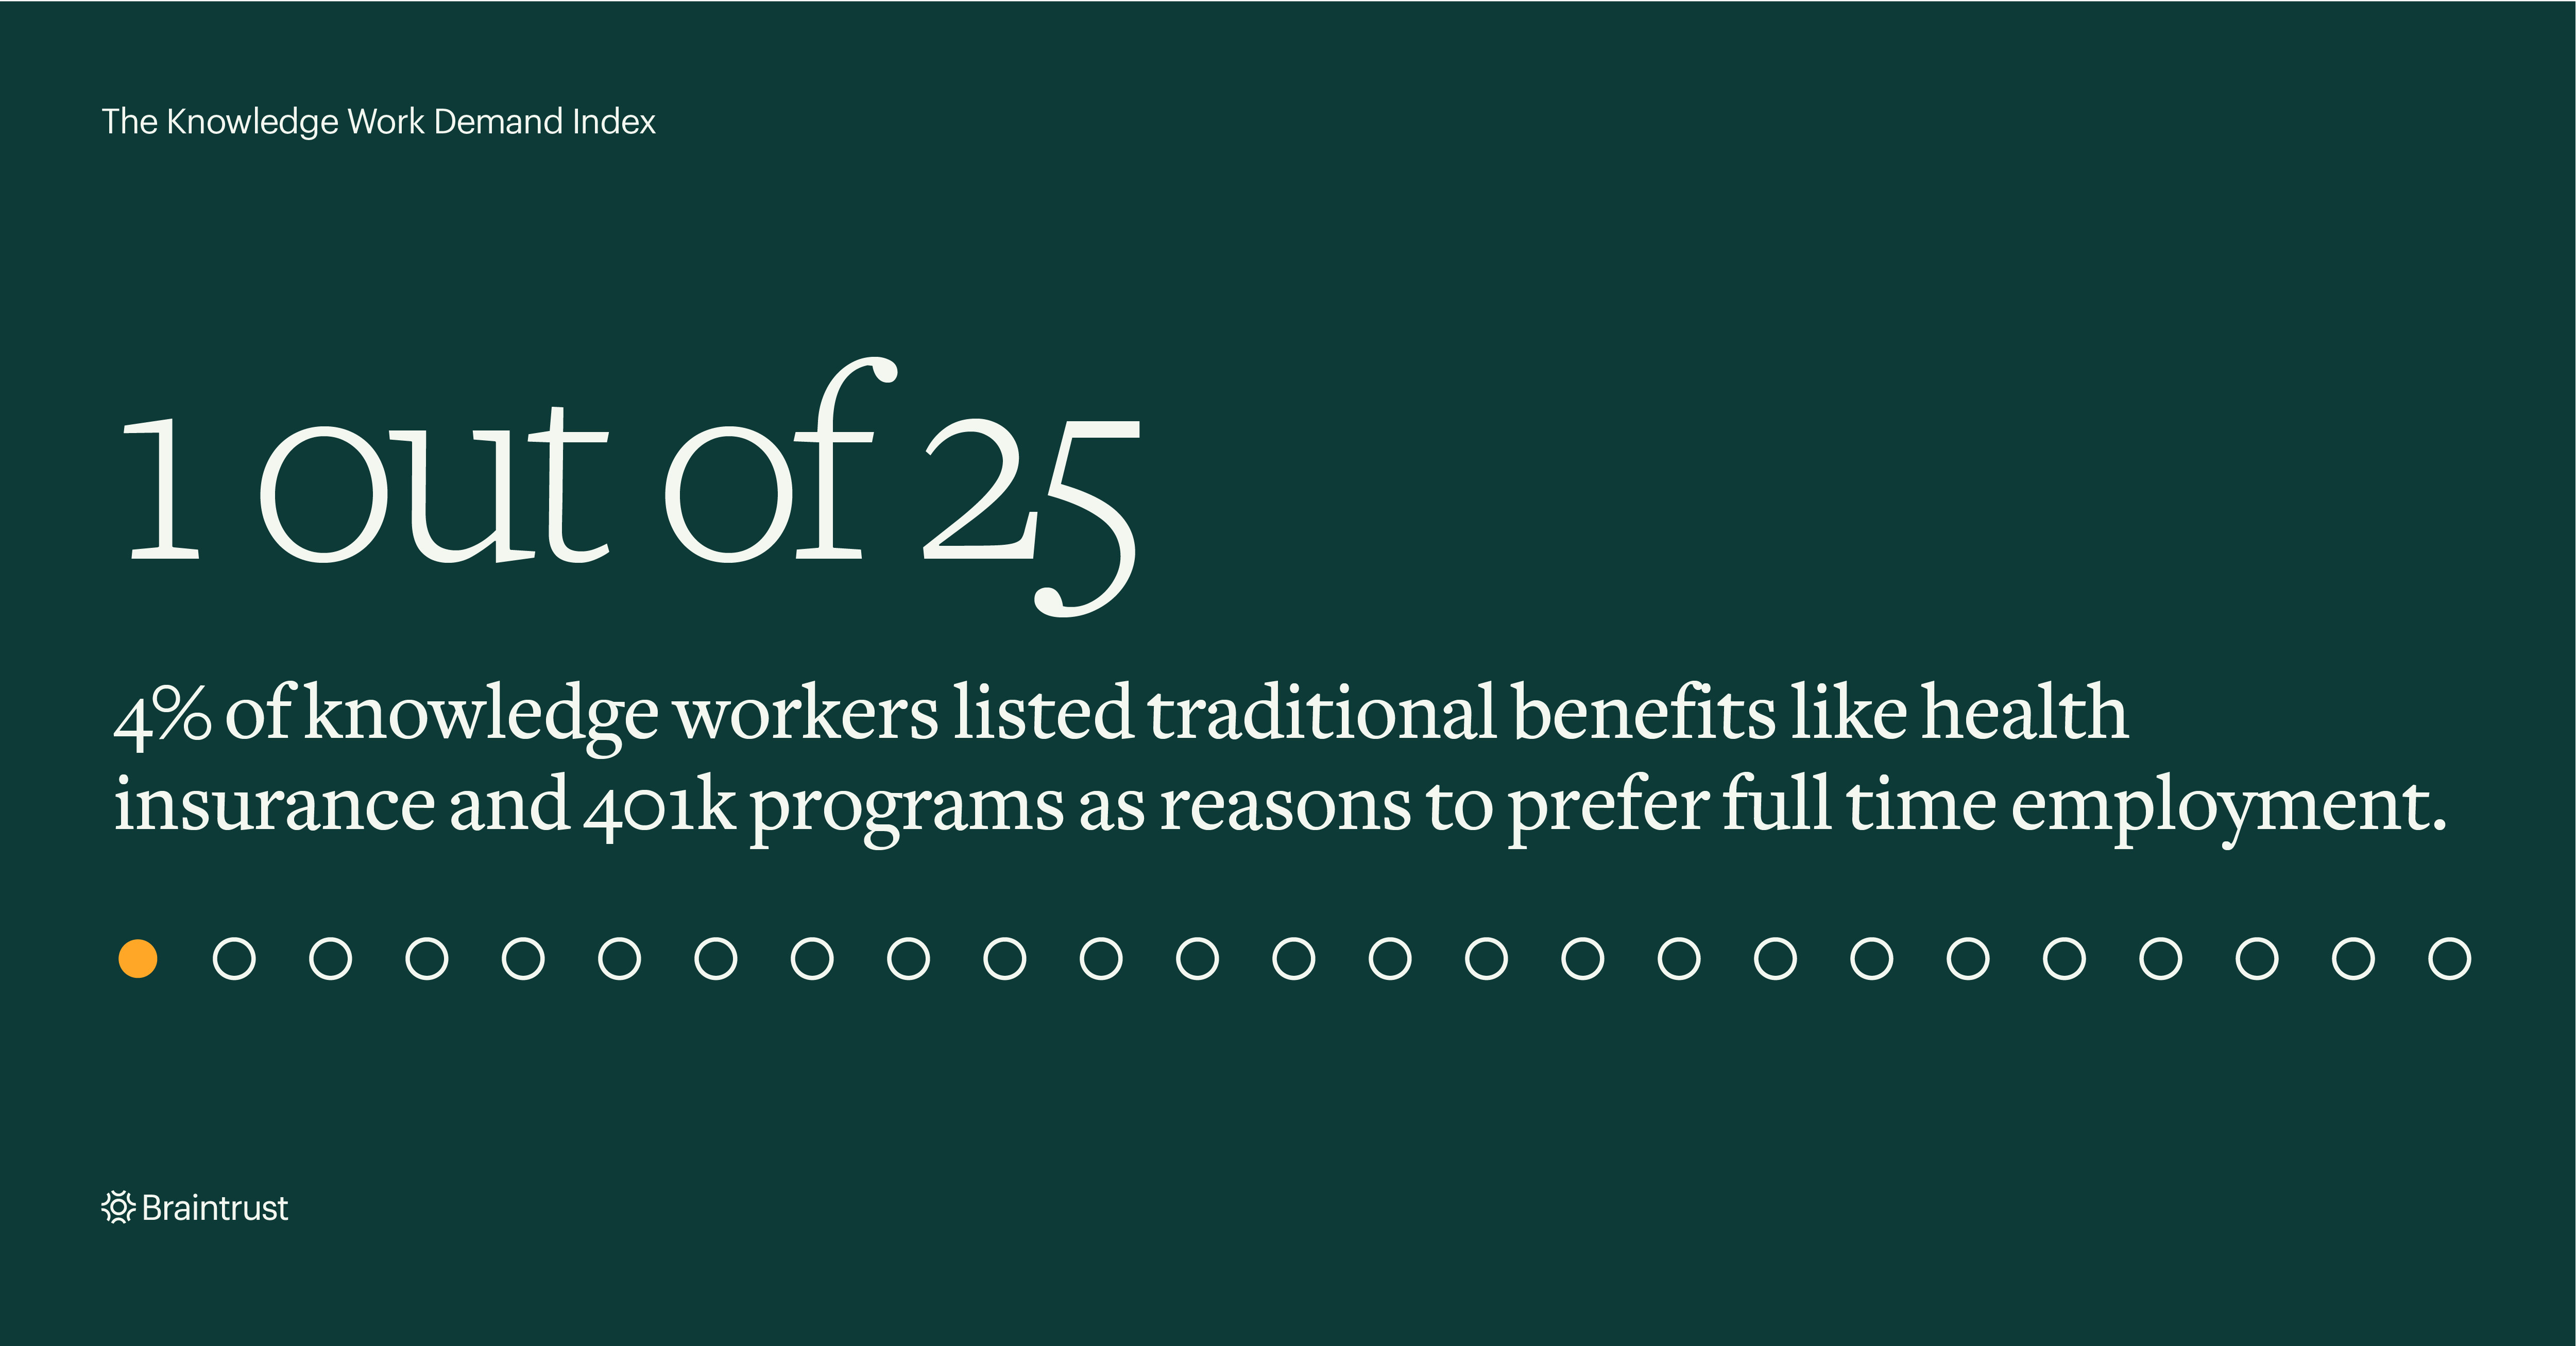 Braintrust announces Knowledge Work Demand Index with 1 out of 25 knowledge workers responding that they receive traditional benefits